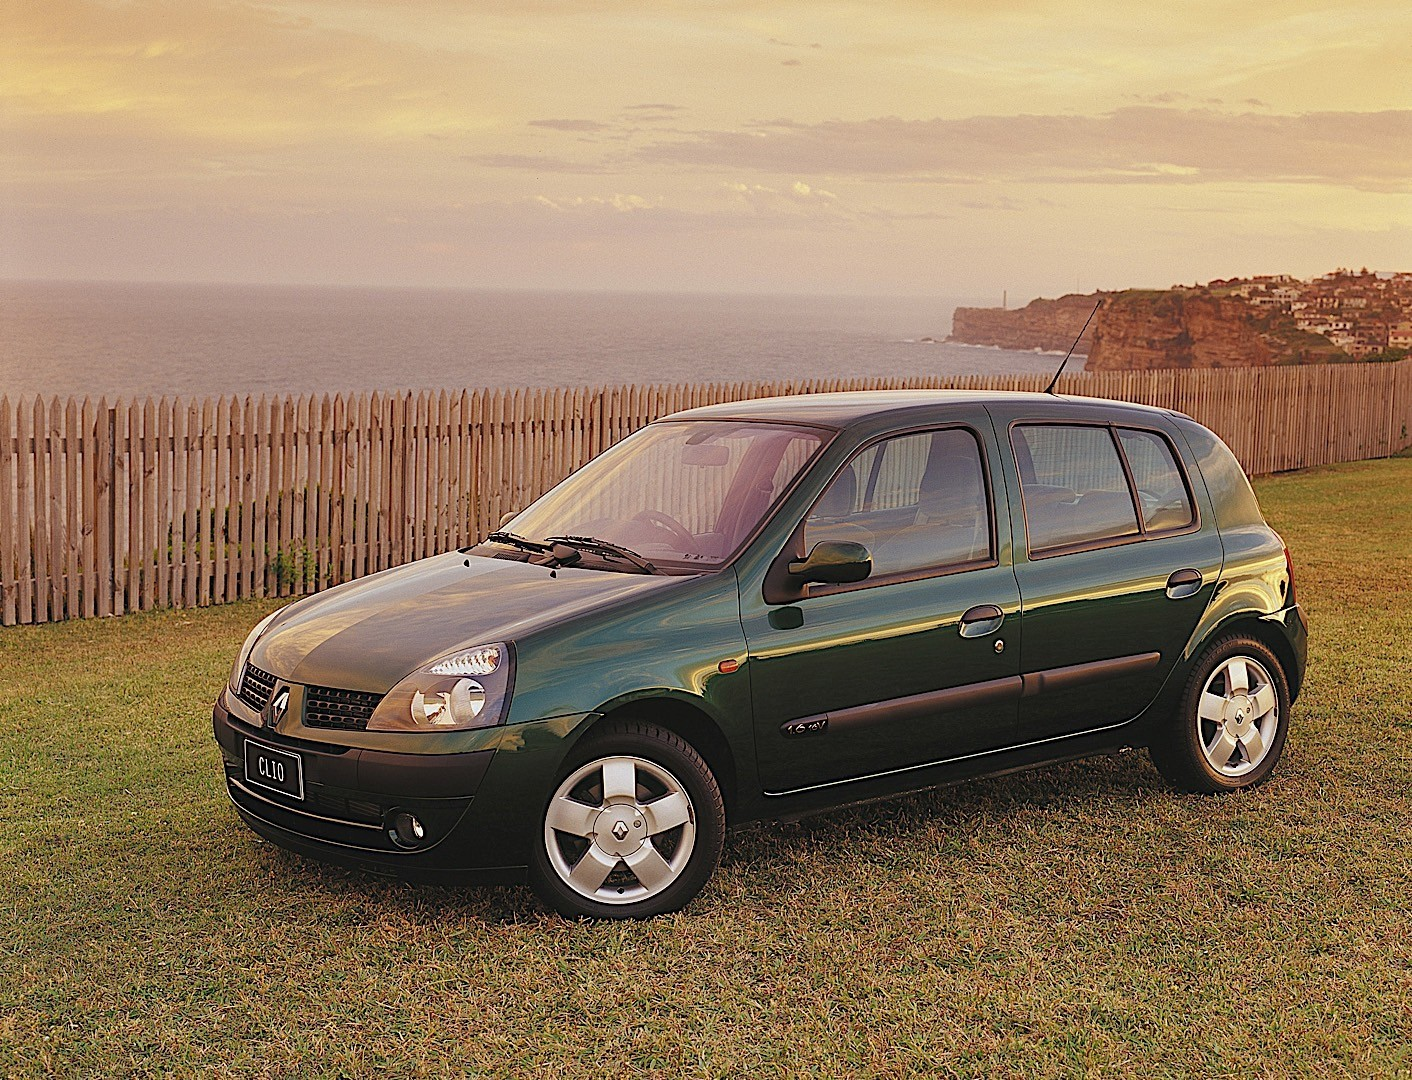 timing for renault clio 1,6 2001 year heating hose diagram for 1999 mazda 1 6 engine renault clio 5 doors specs amp photos 2001 2002 2003